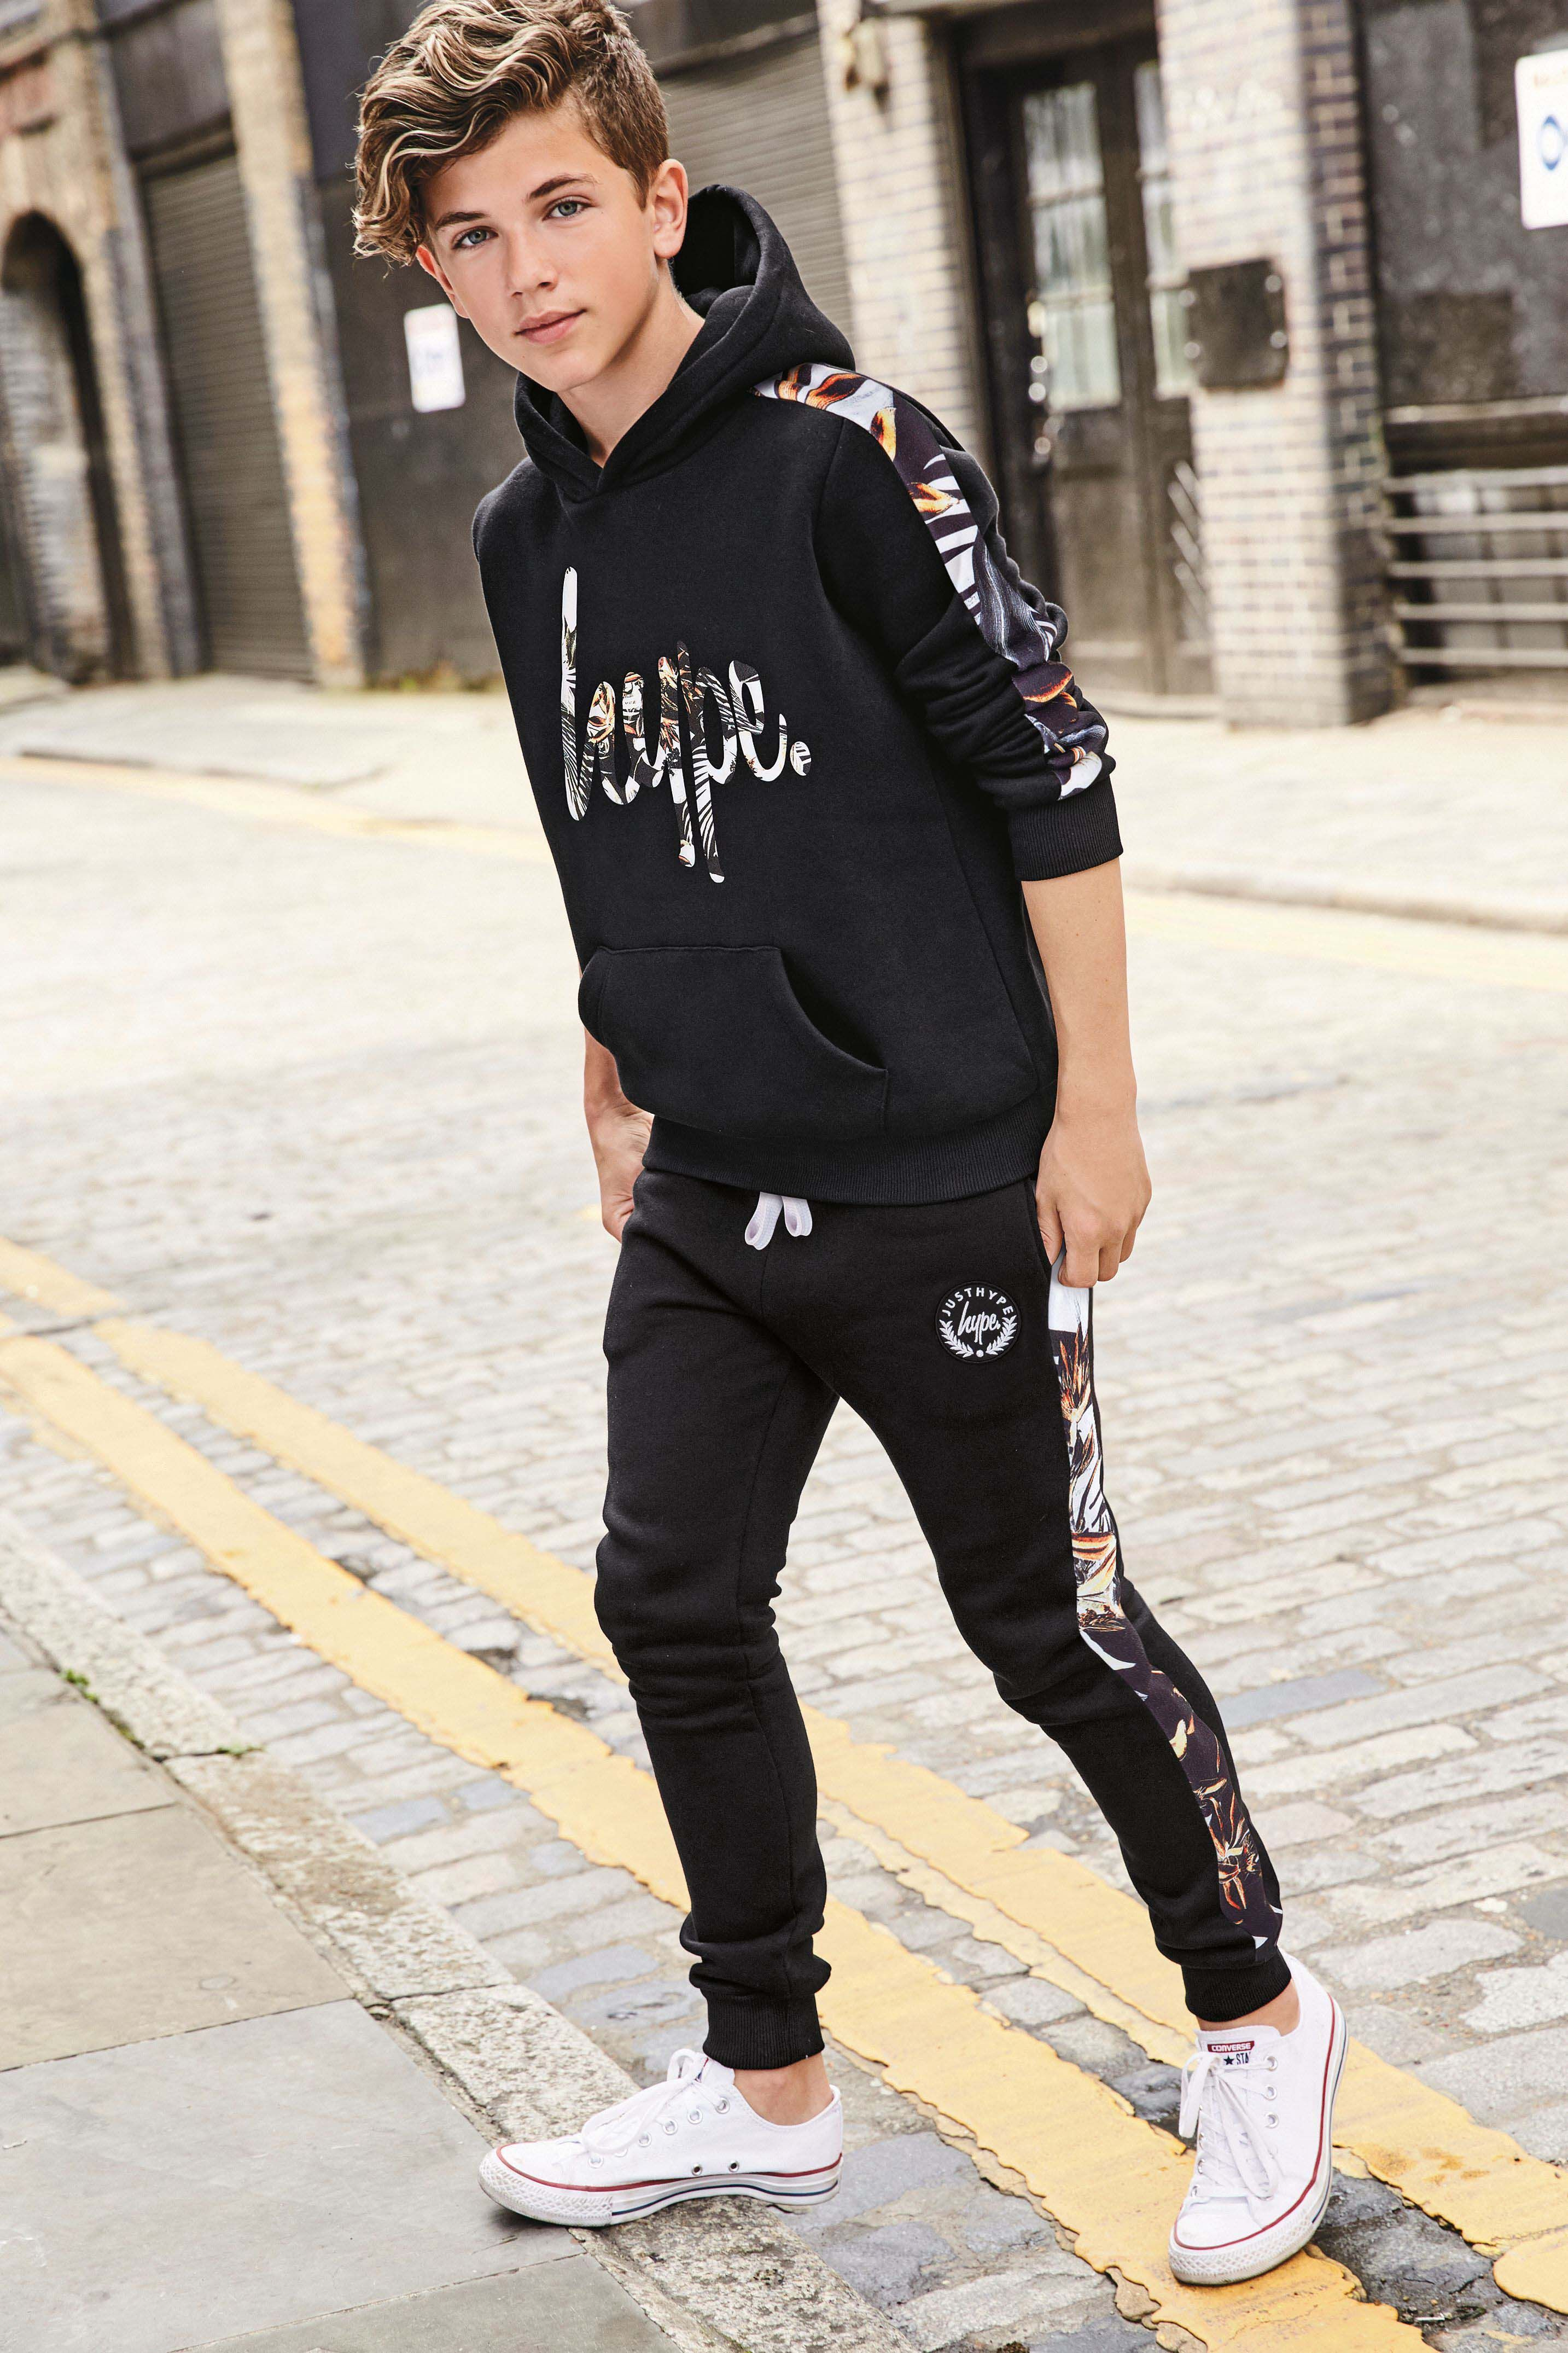 Boys Hype Printed Panel Jogger Black Teenage Boy Fashion Boy Clothes Youth Tween Outfits